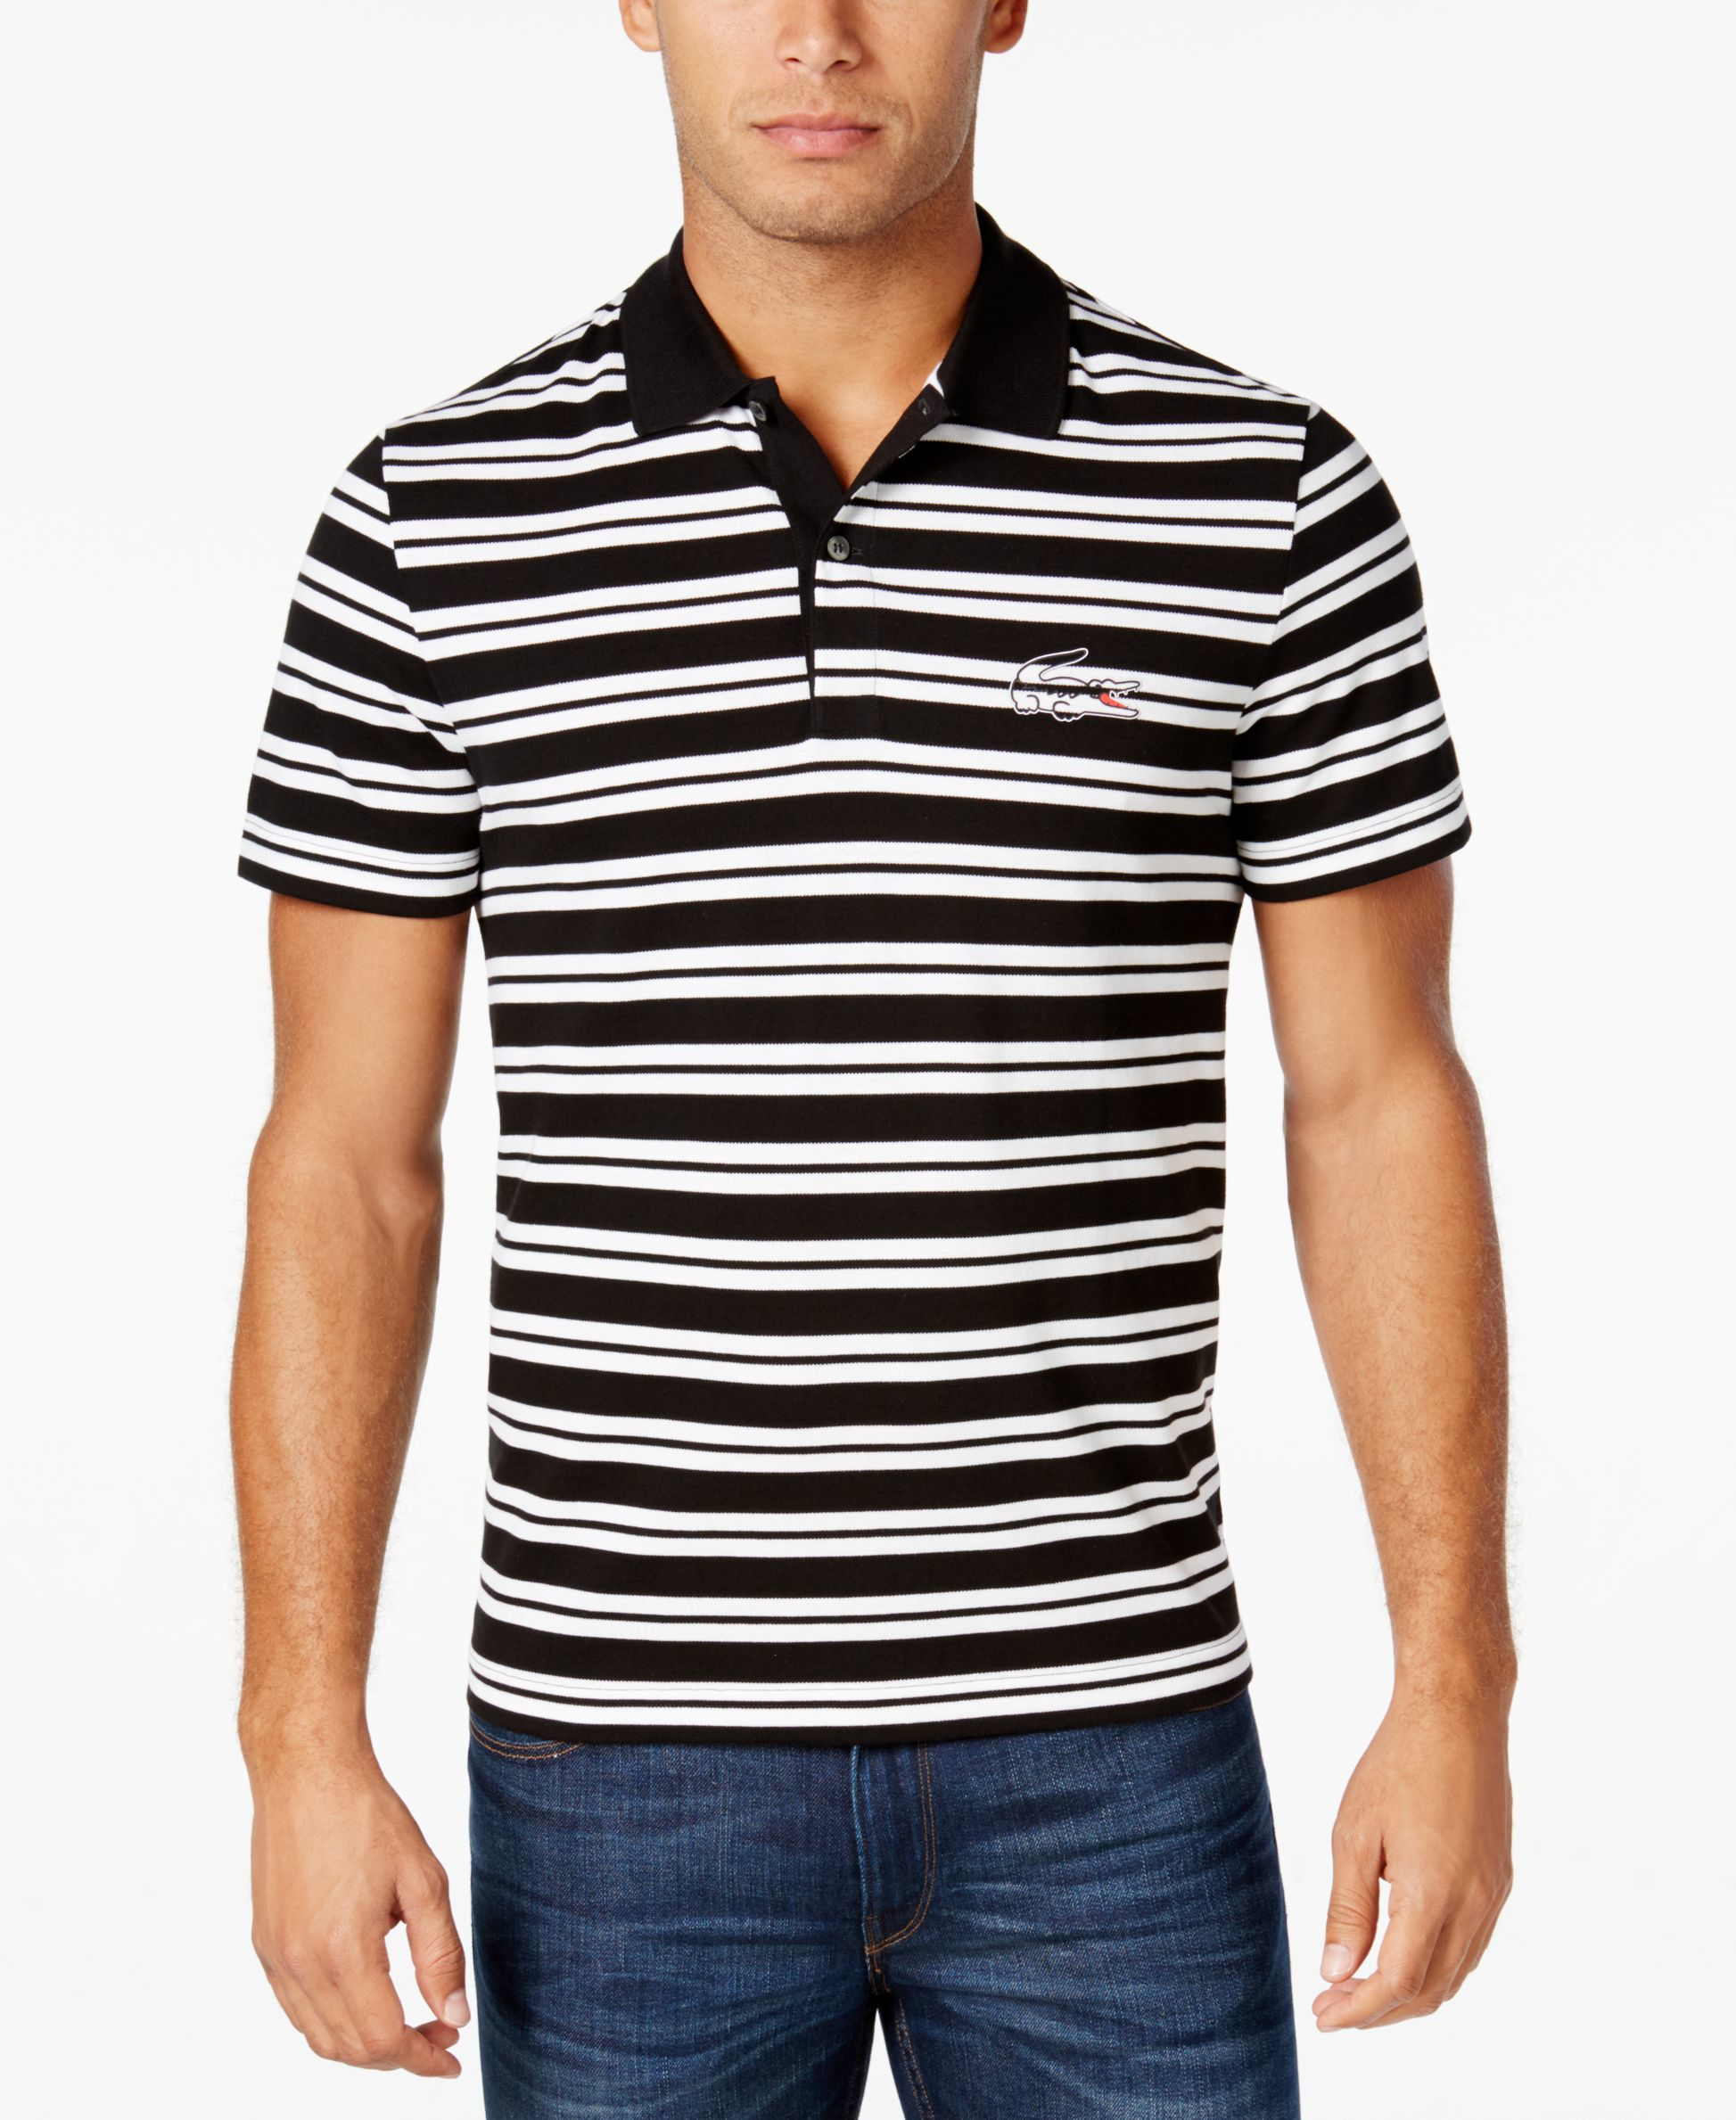 Lacoste men 39 s pique striped polo in black for men lyst for Lacoste stripe pique polo shirt